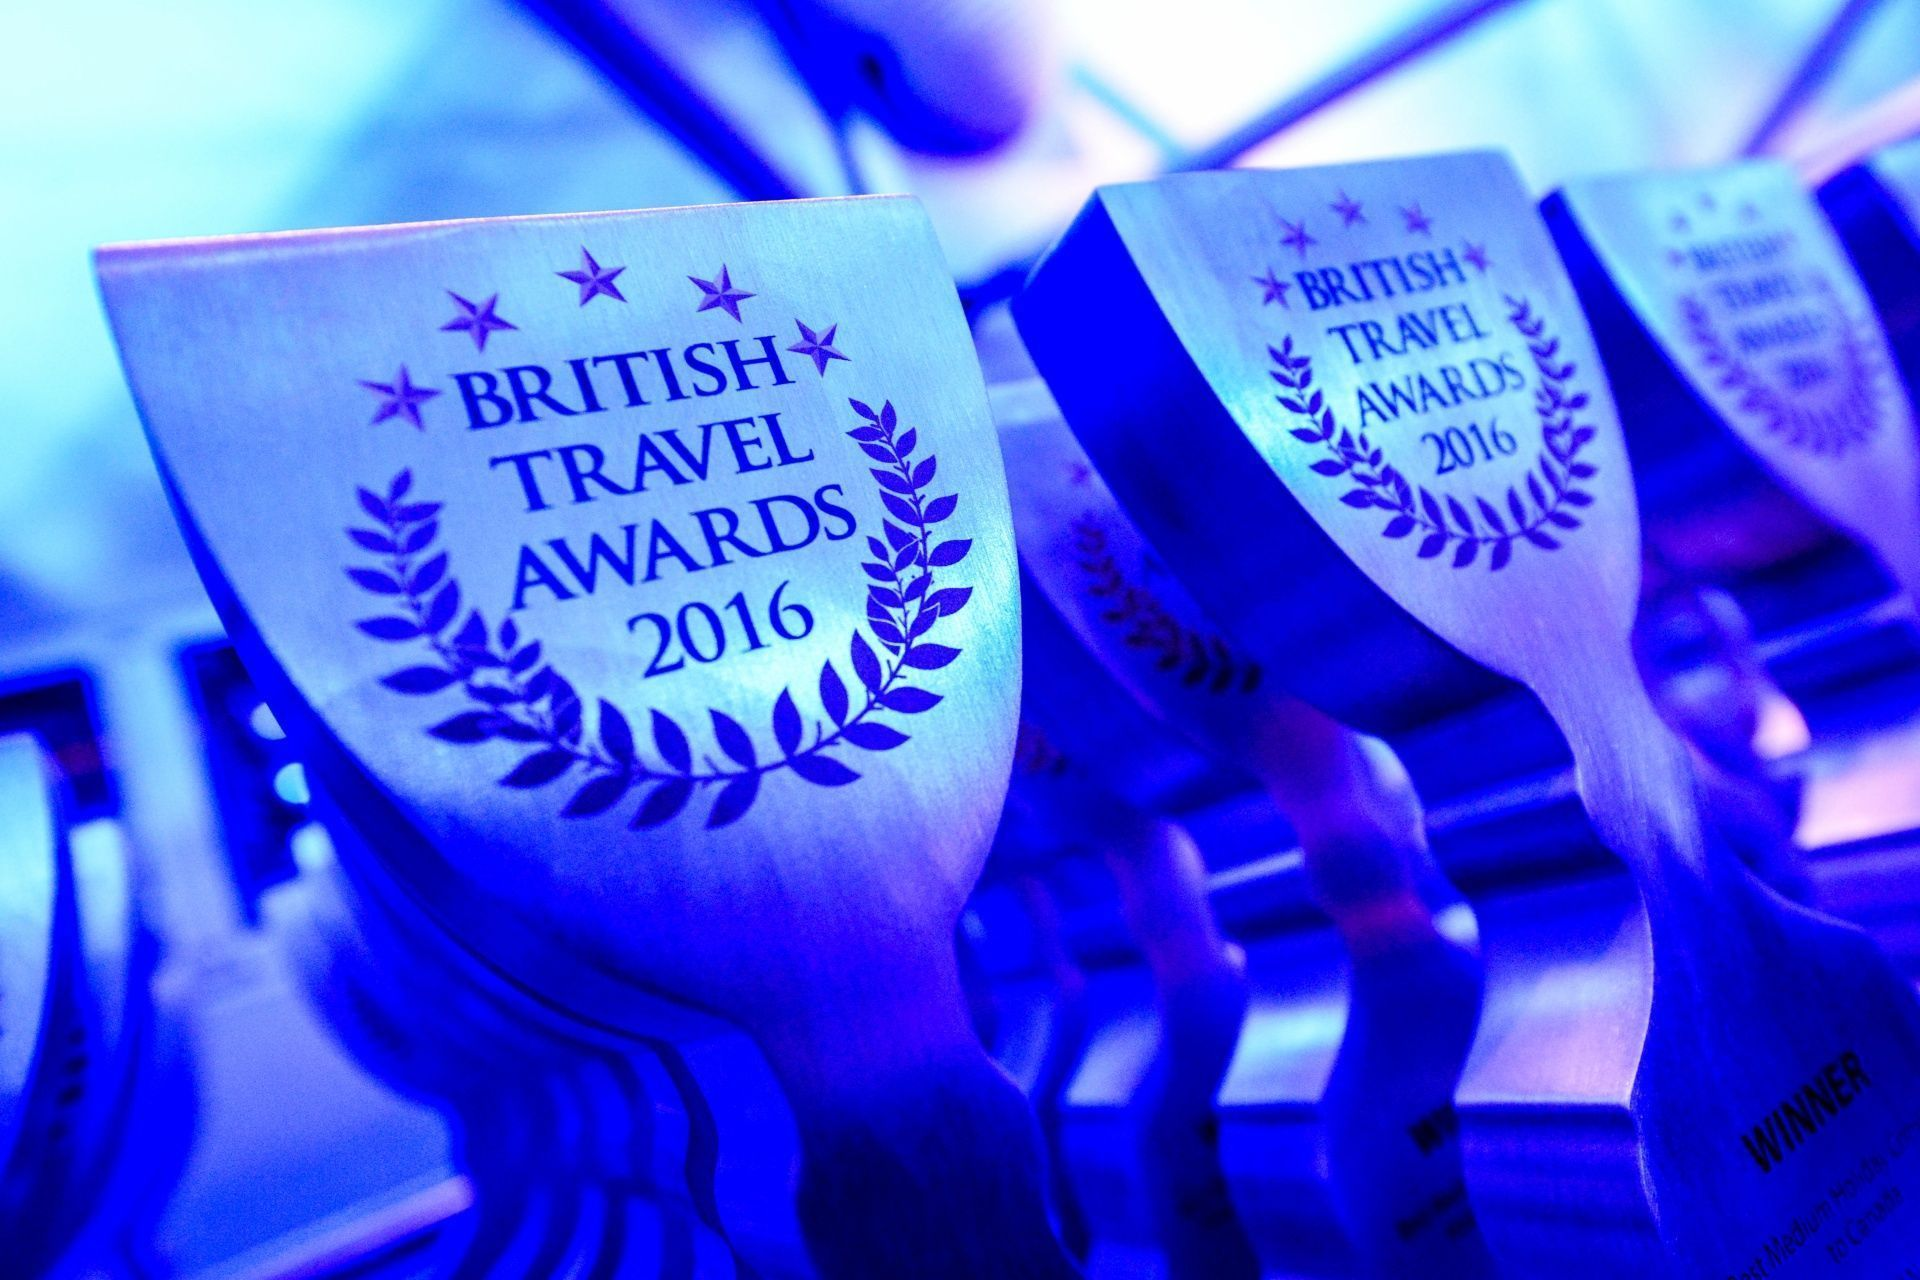 Gold at the British Travel Awards